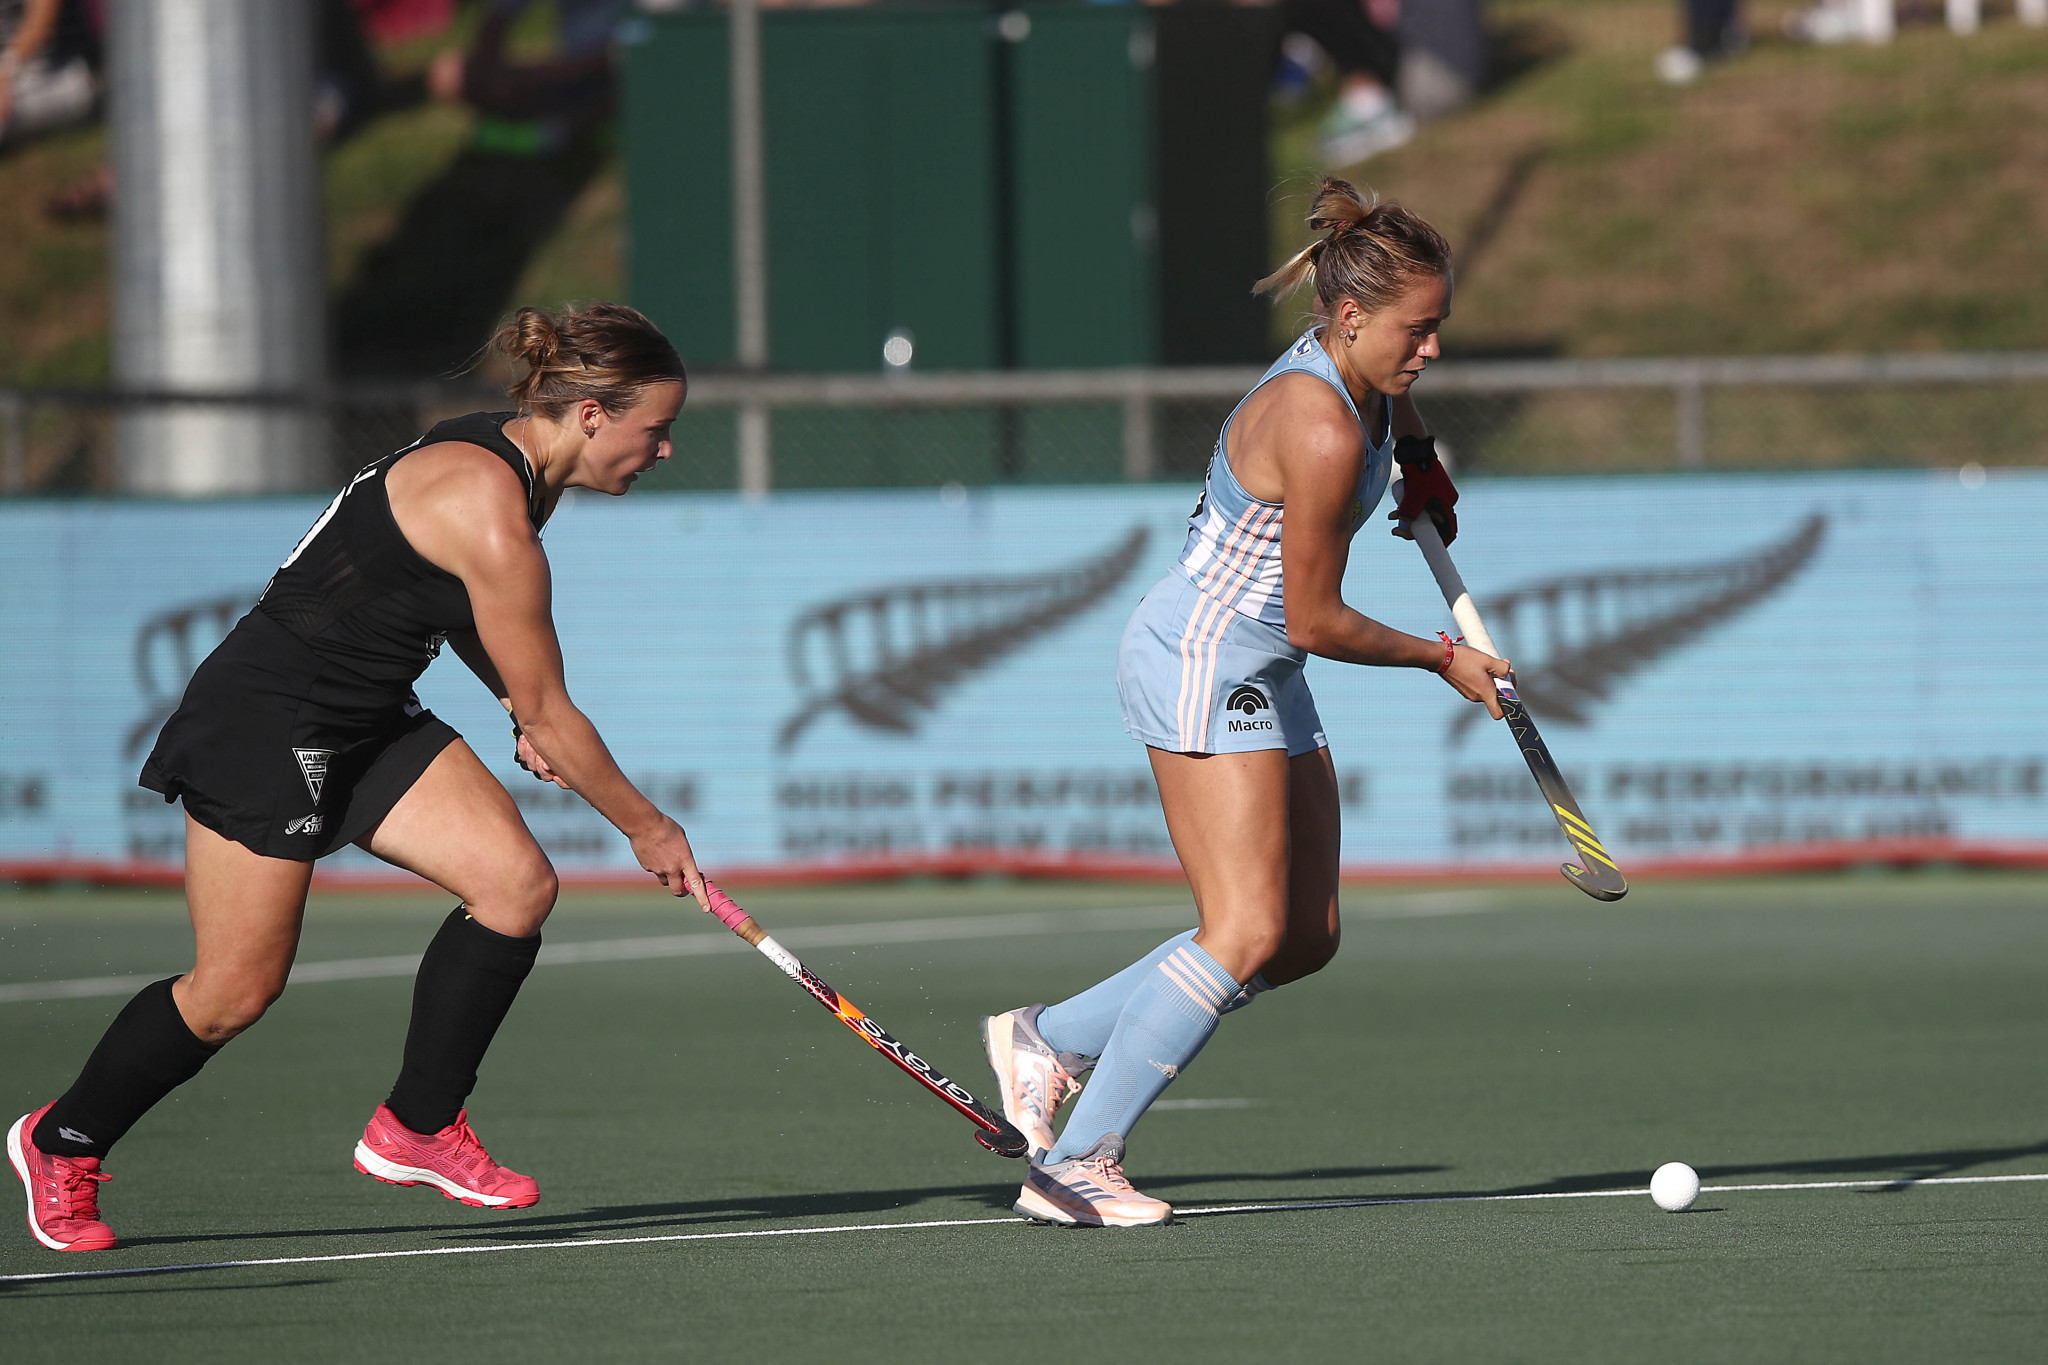 Argentina record two victories over hosts New Zealand in FIH Pro League